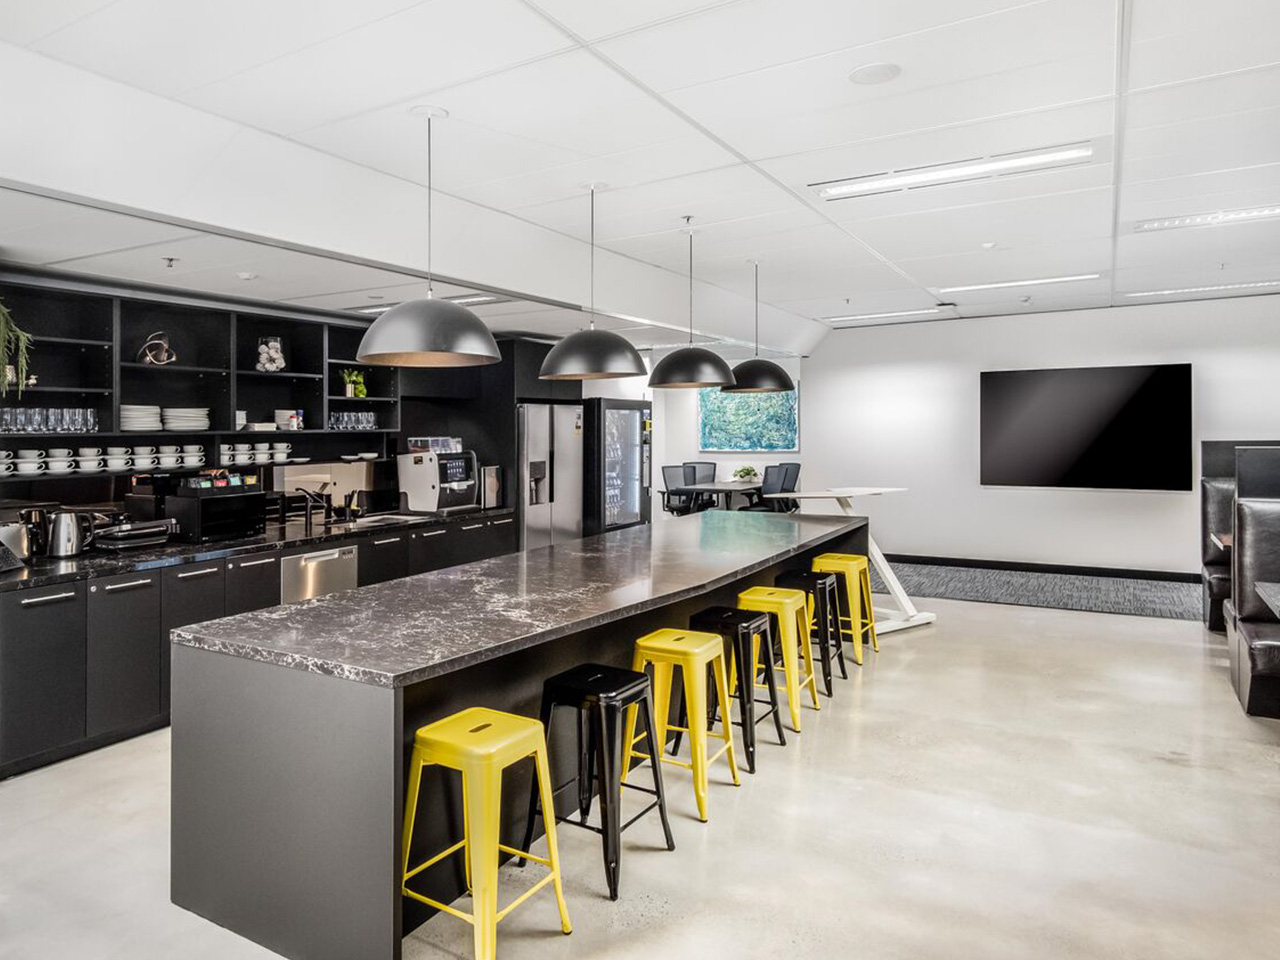 Office Kitchen With Long Table, TV Screen And Six Chairs In Black And Yellow